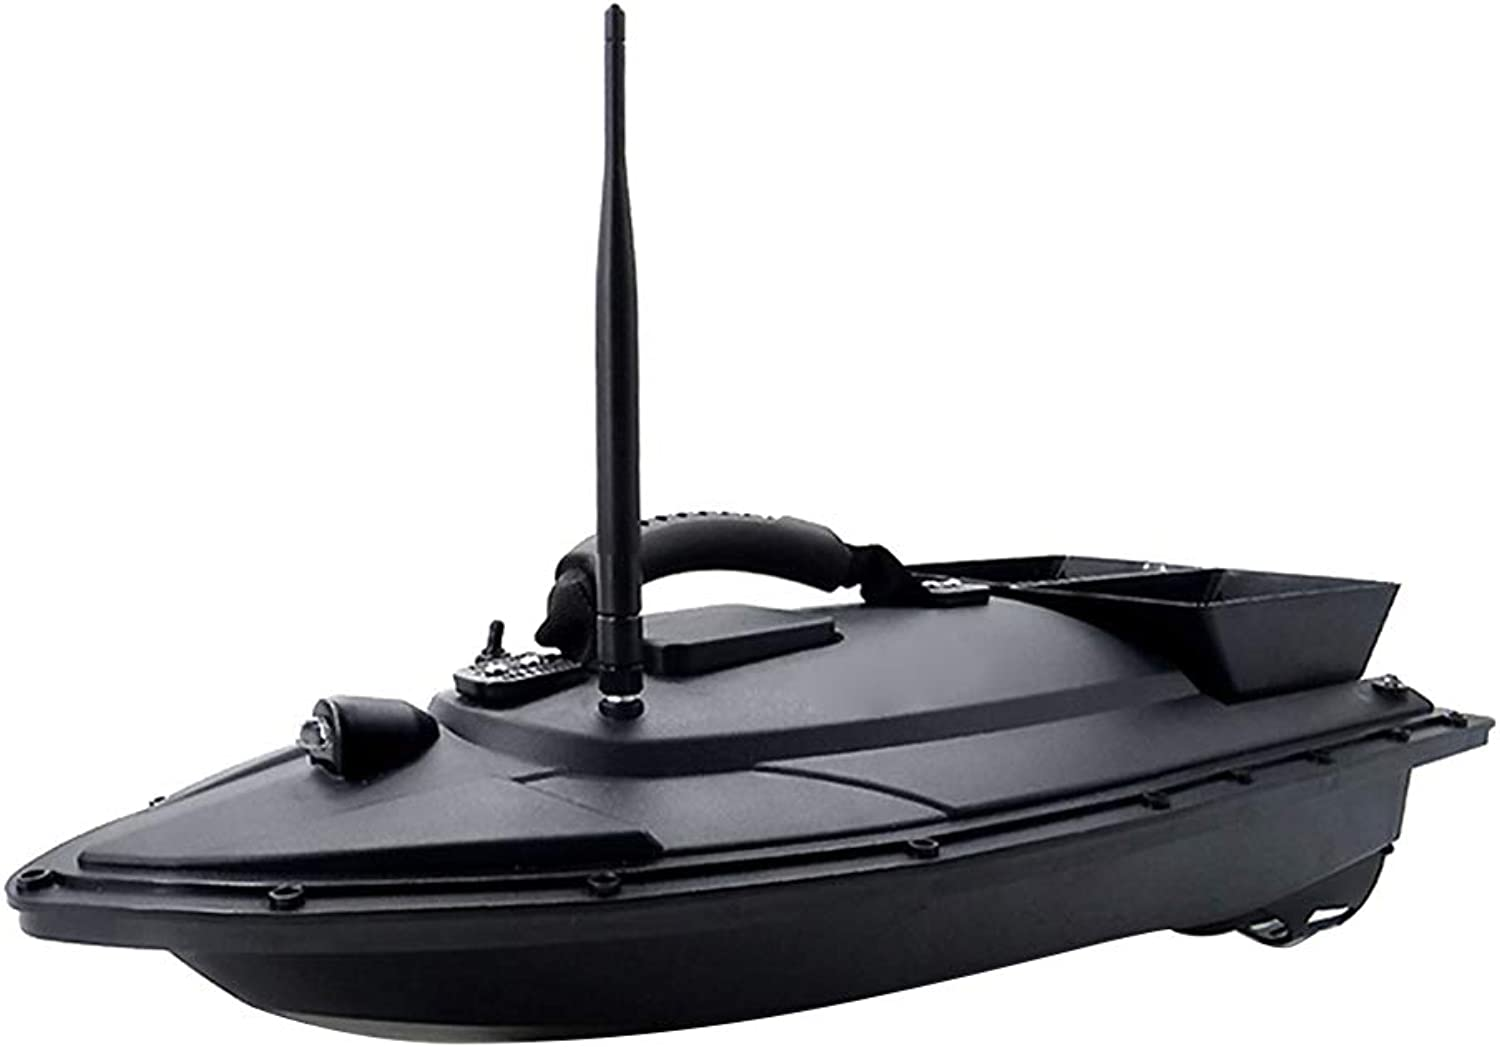 Fishing bait boat Intelligent Remote Control 500 Meters Wireless Long Distance ABS Material 1.3 KG Capacity with Double Motor Fishing Boat, Size 54  16  26.5CM